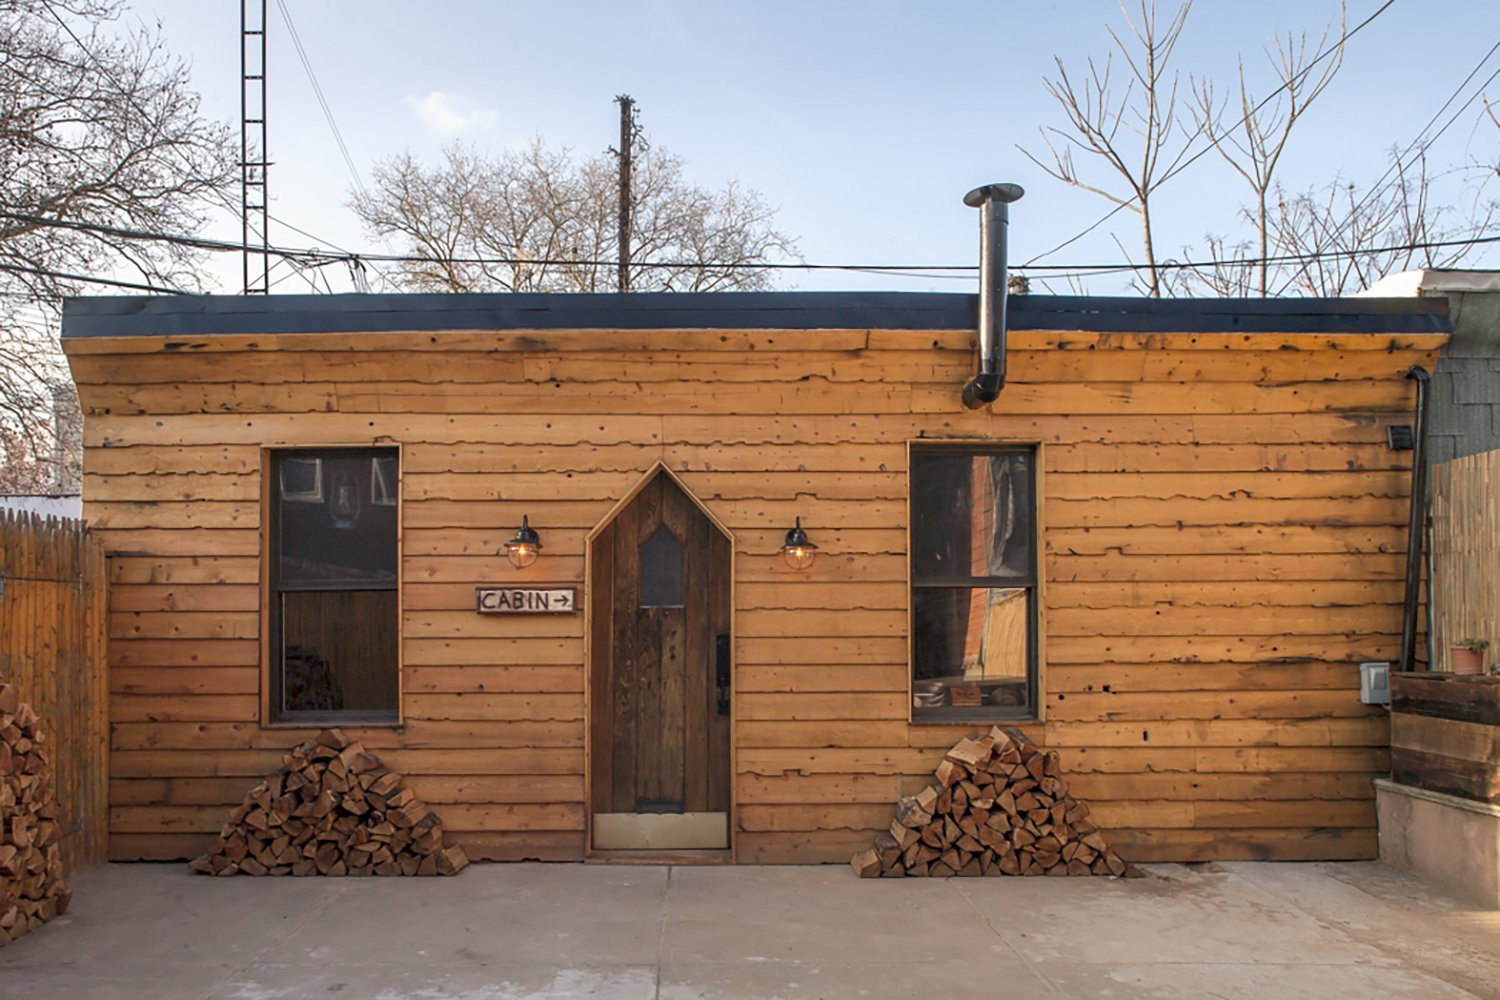 Photo 3 of 8 in Williamsburg's Western-style Lodge Unites Traveling Creatives